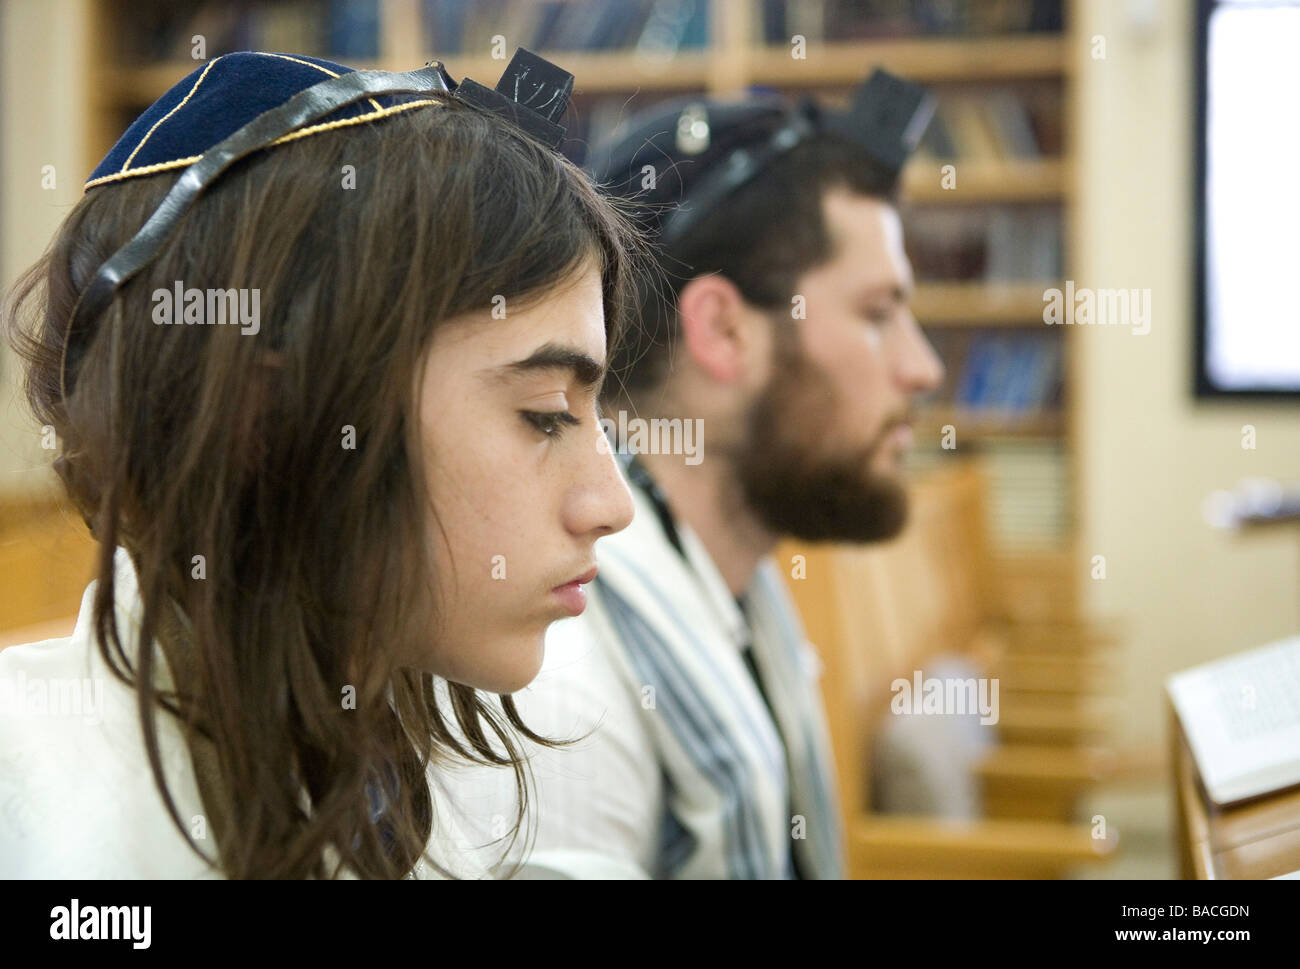 Bar Mitzvah ceremony in a synagogue - Stock Image